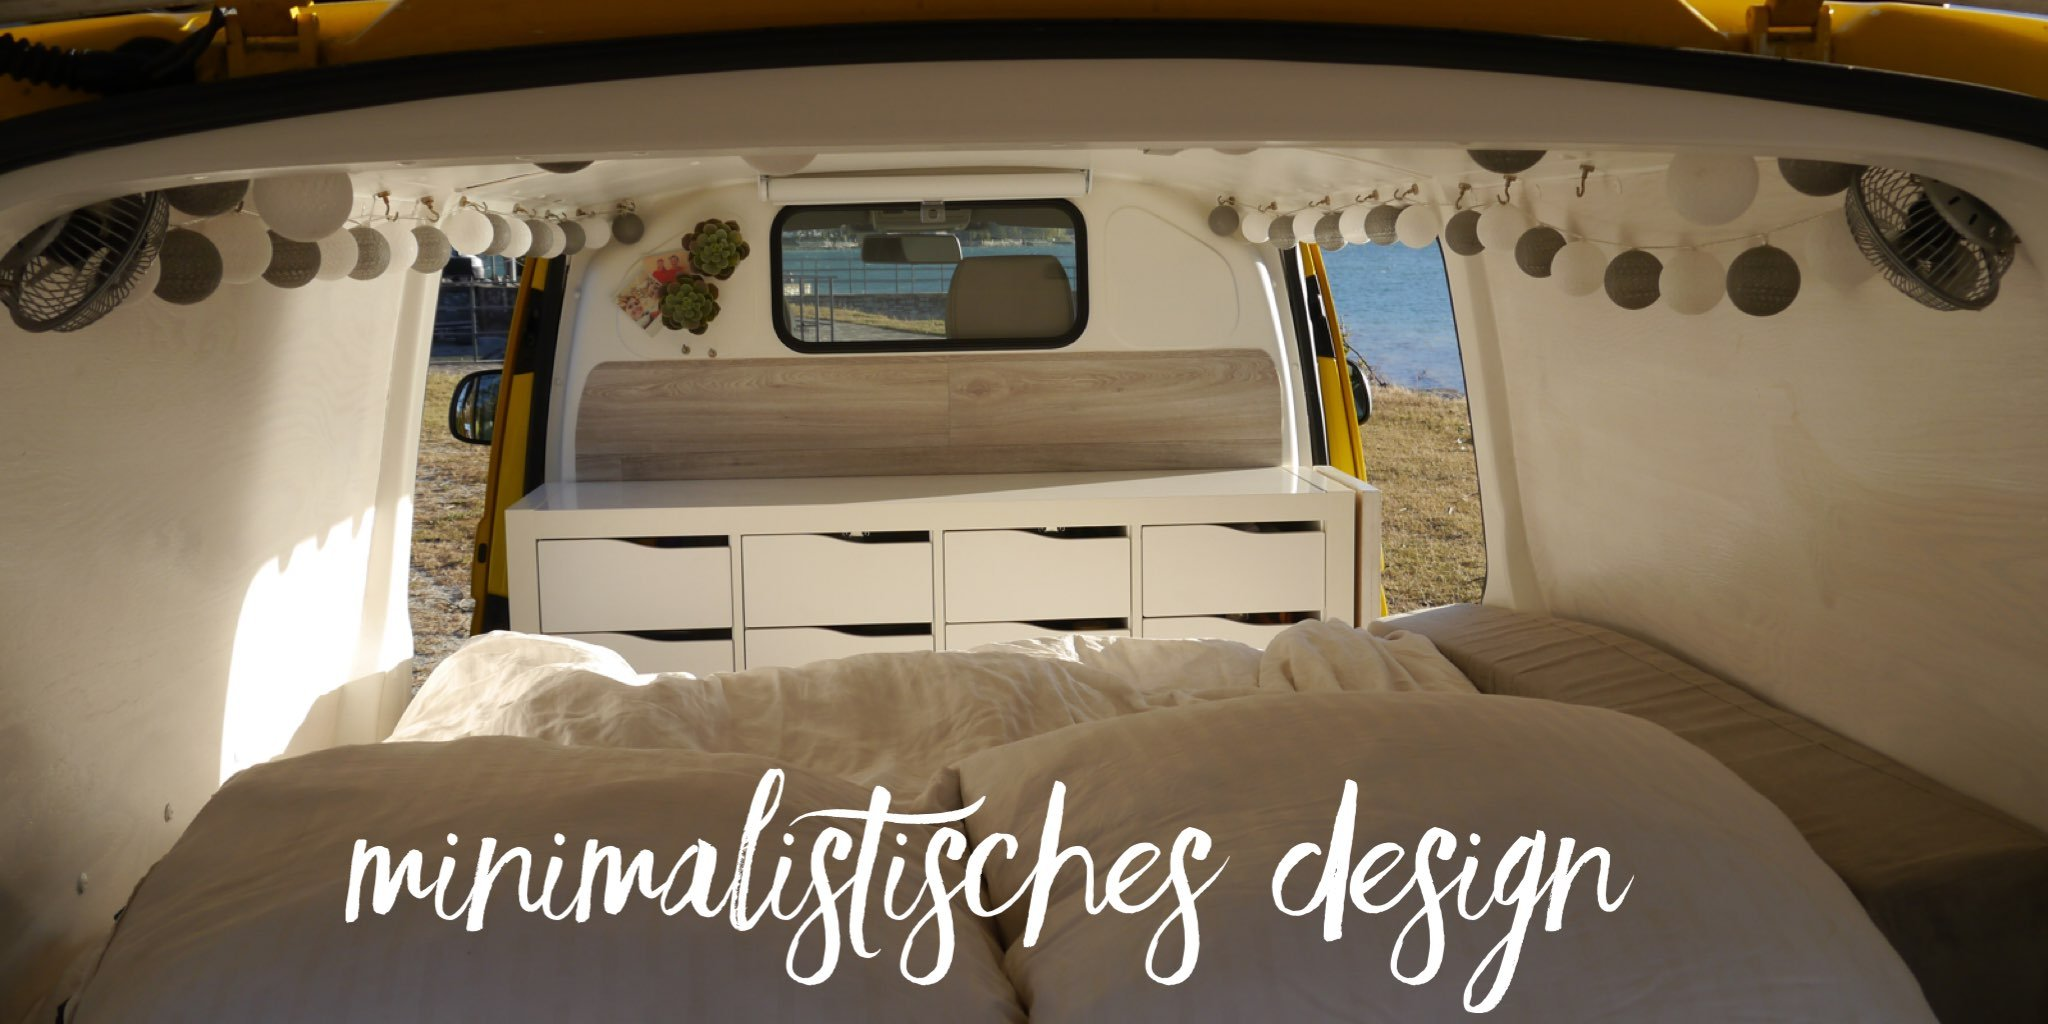 vw t5 camper ausbau projekt vanlife vw t5 camper ausbau. Black Bedroom Furniture Sets. Home Design Ideas